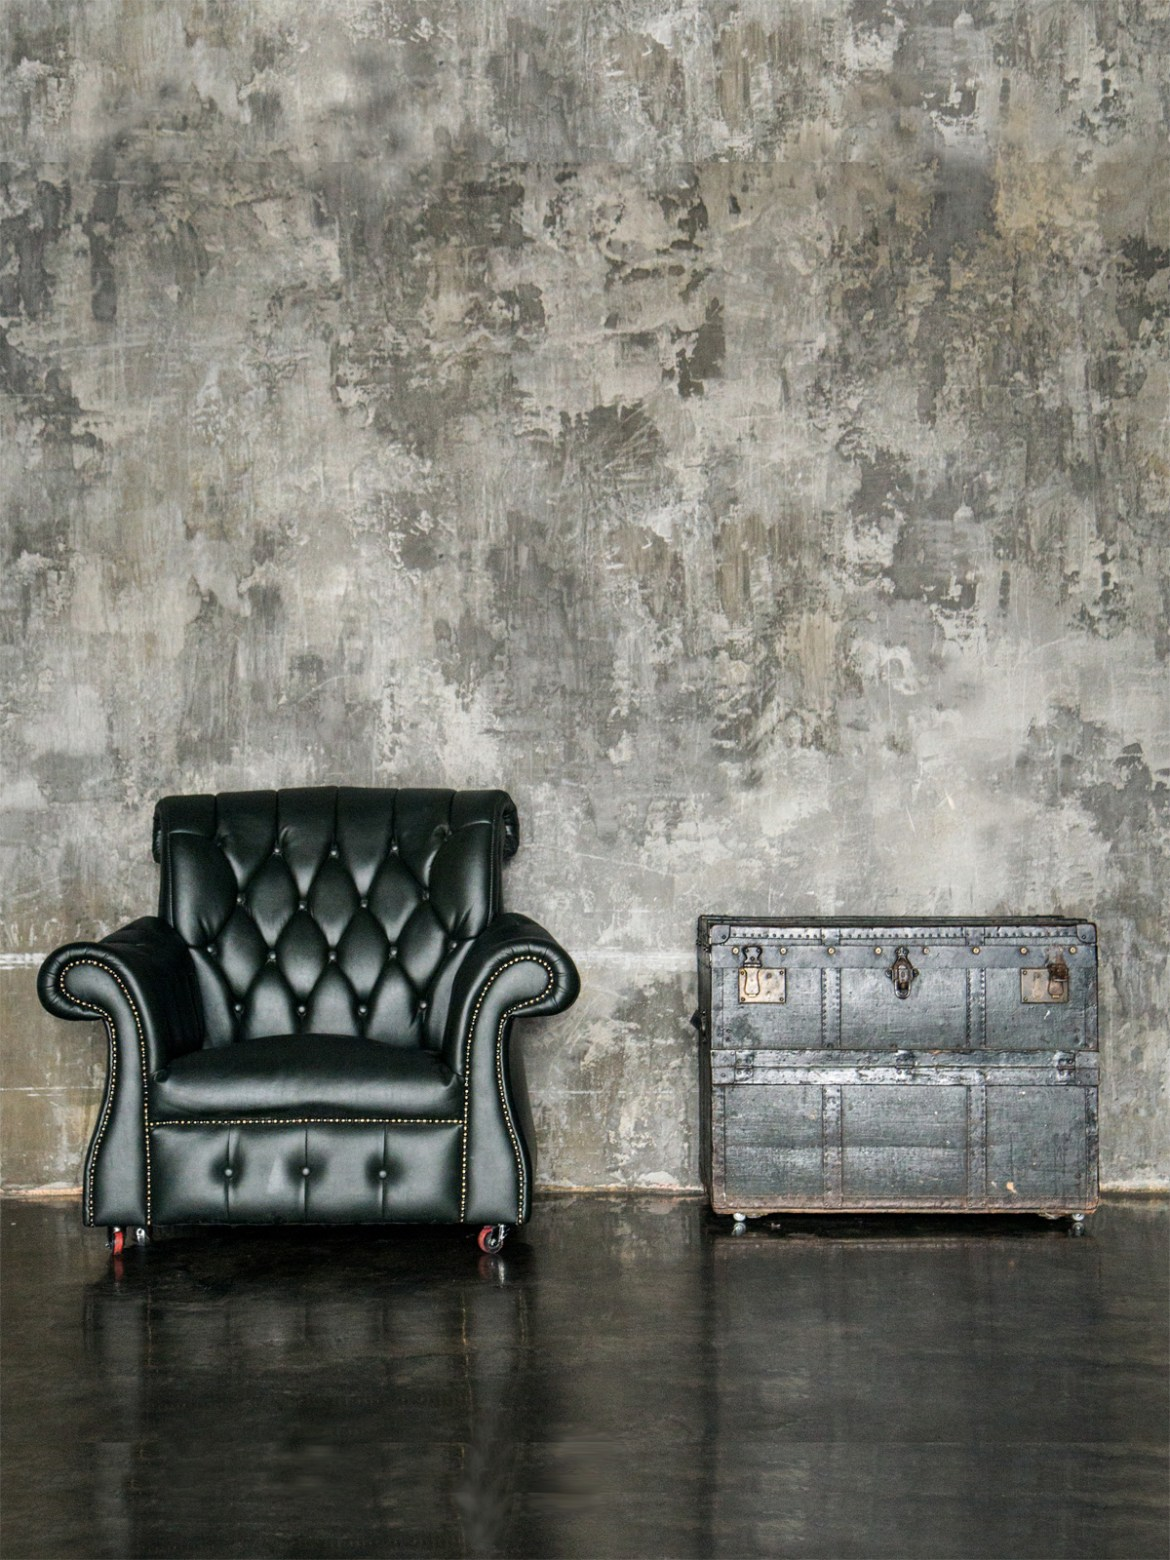 black leather chair and antique trunk with grunge textured wall